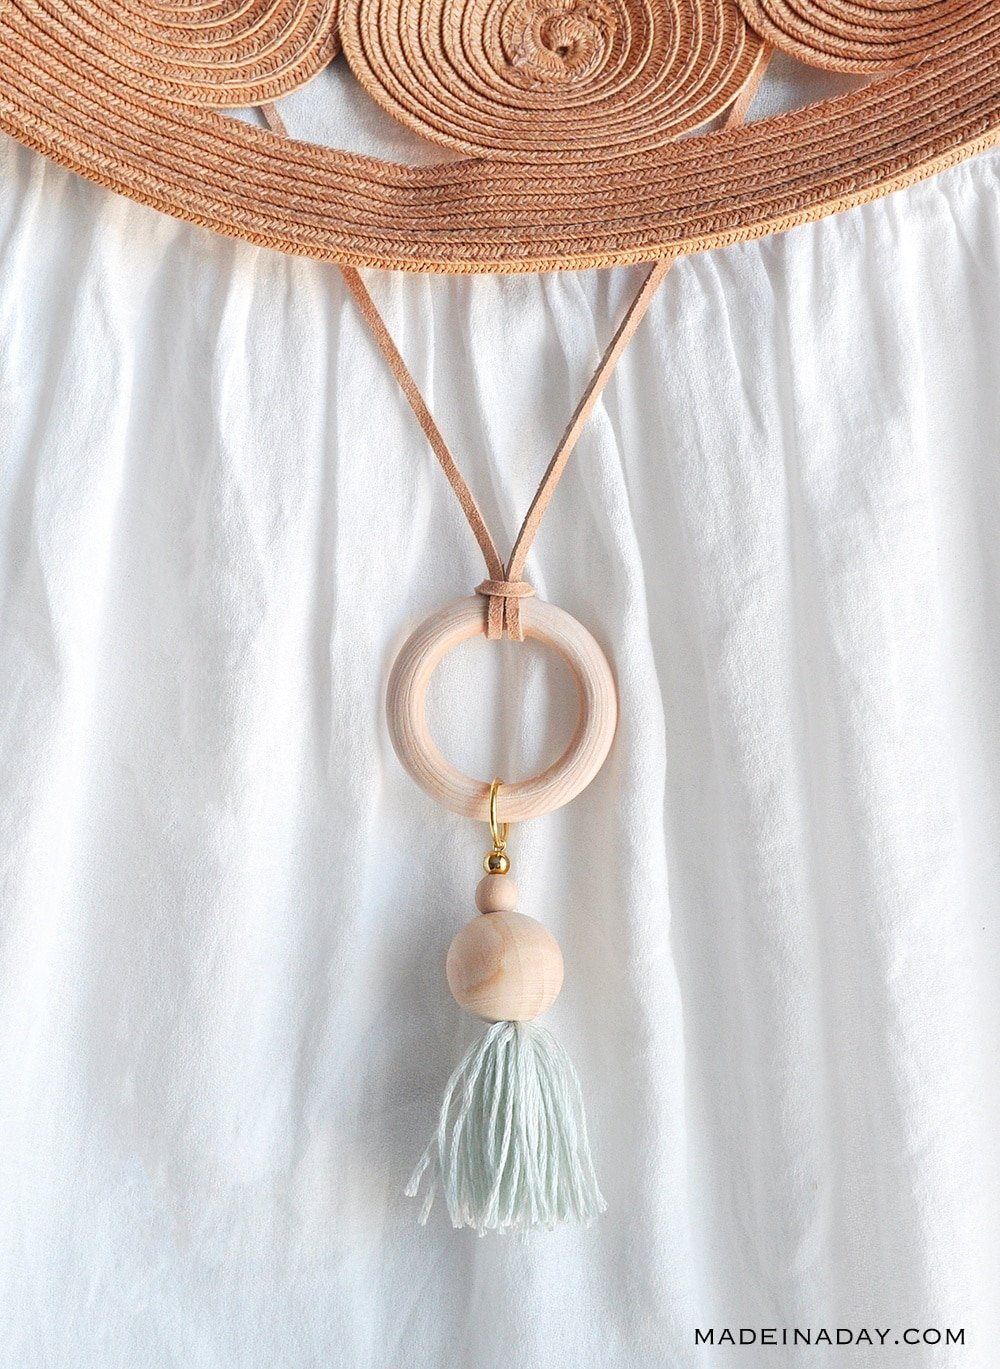 wood ring tassel necklace, wood bead tassel necklace, wood hoop ring tassel necklace